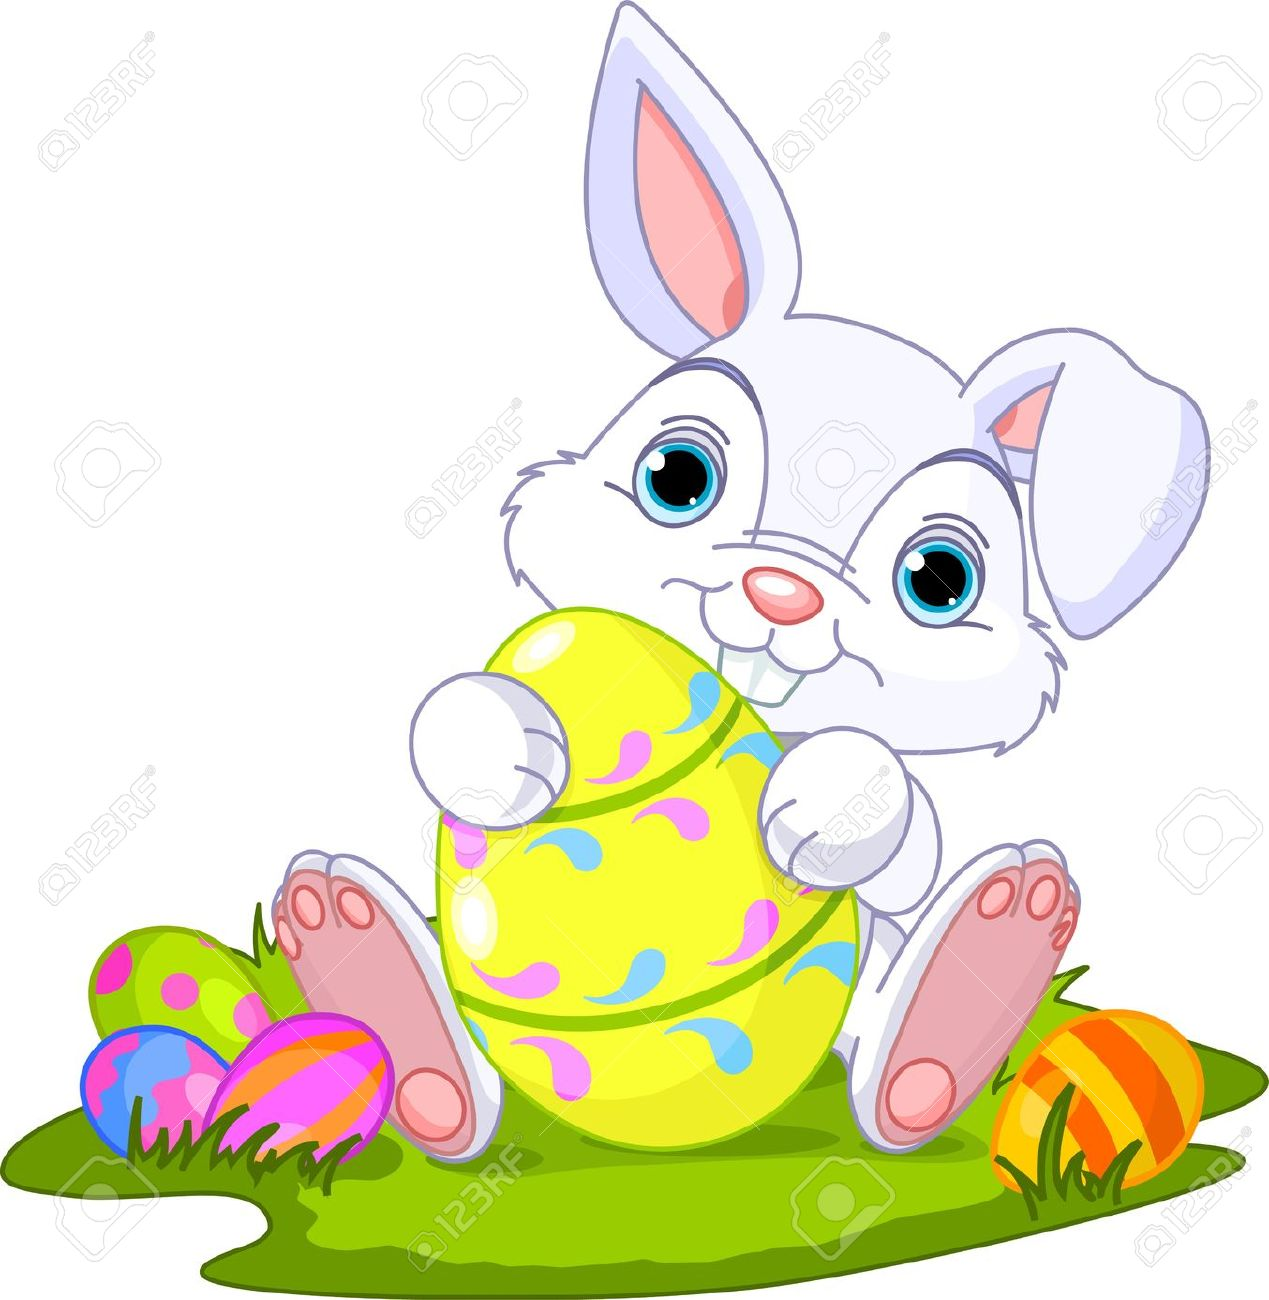 45,559 Easter Bunny Stock Vector Illustration And Royalty Free.